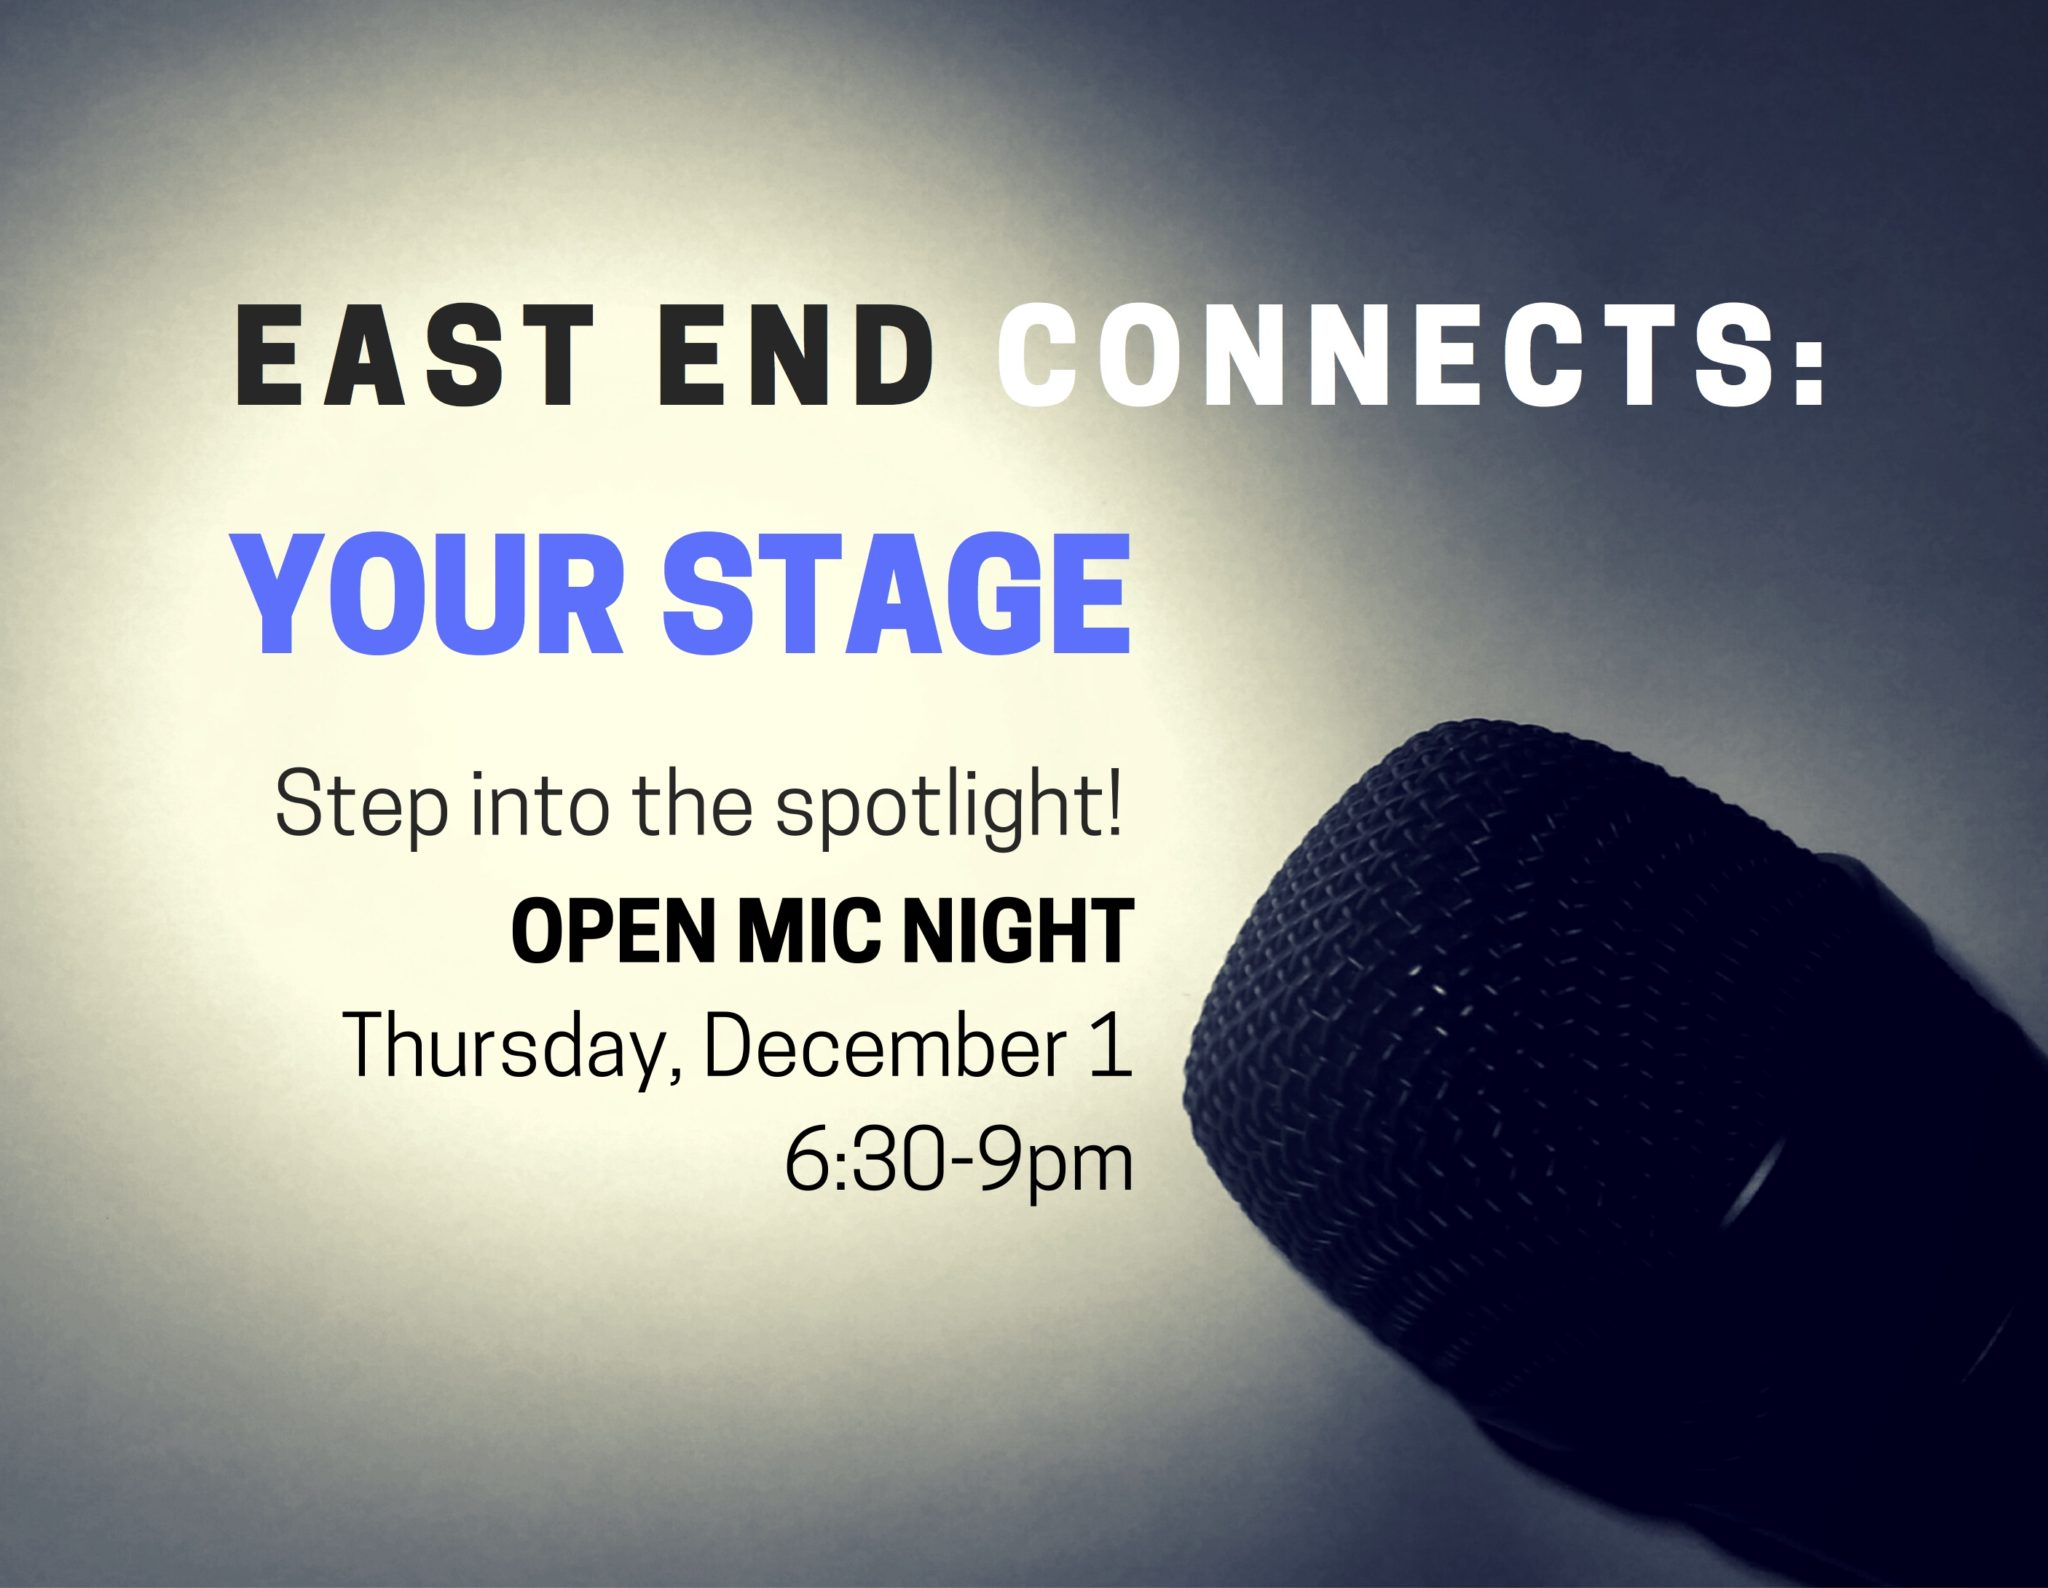 East End Connects: Your Stage